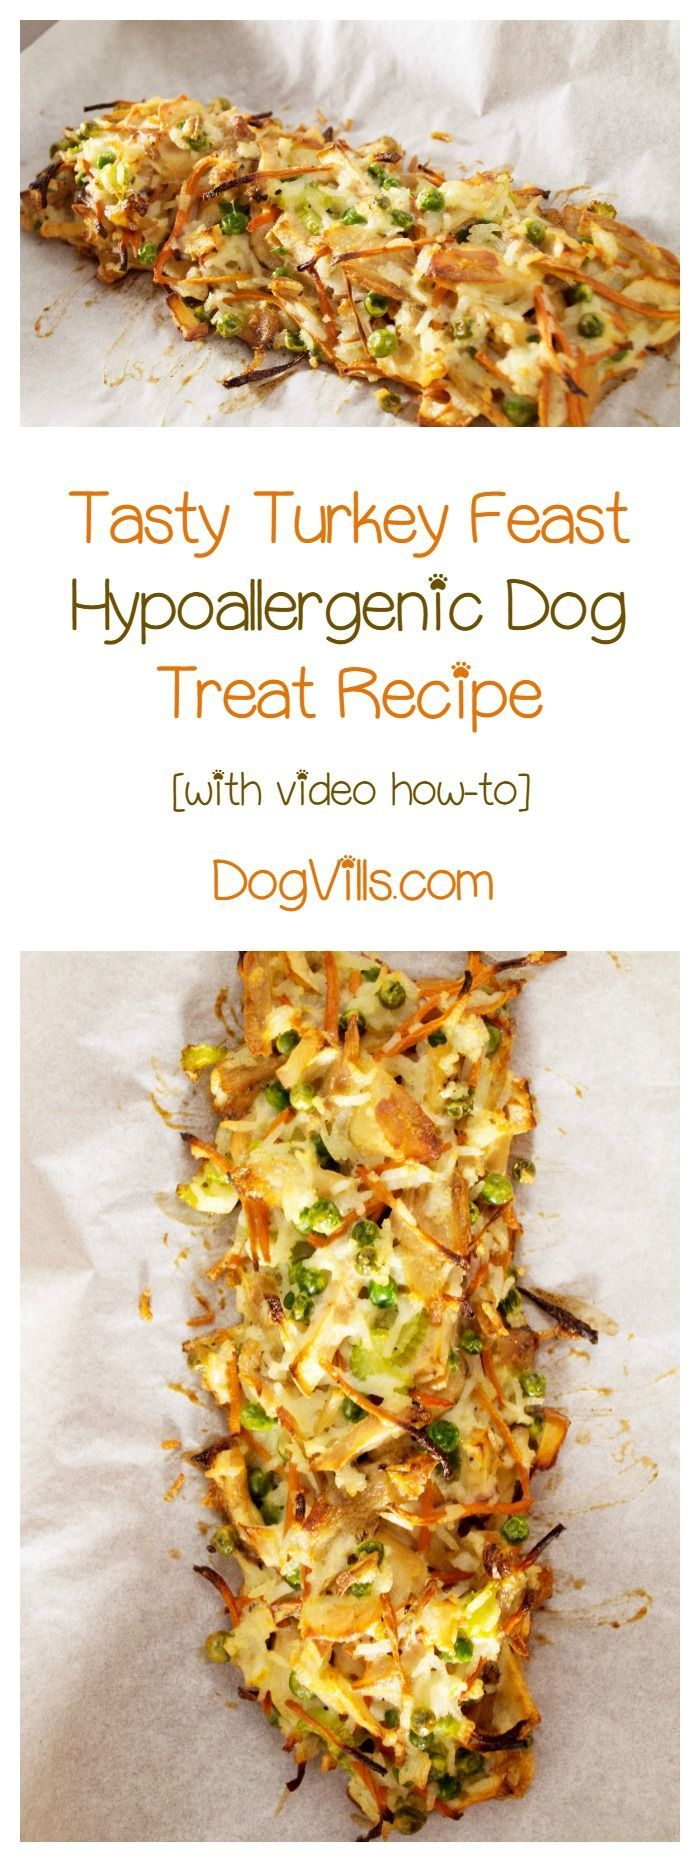 Looking for thanksgiving recipes for dogs? Check out these tasty Turkey Feast dog treats! Bonus: it's hypoallergenic too!